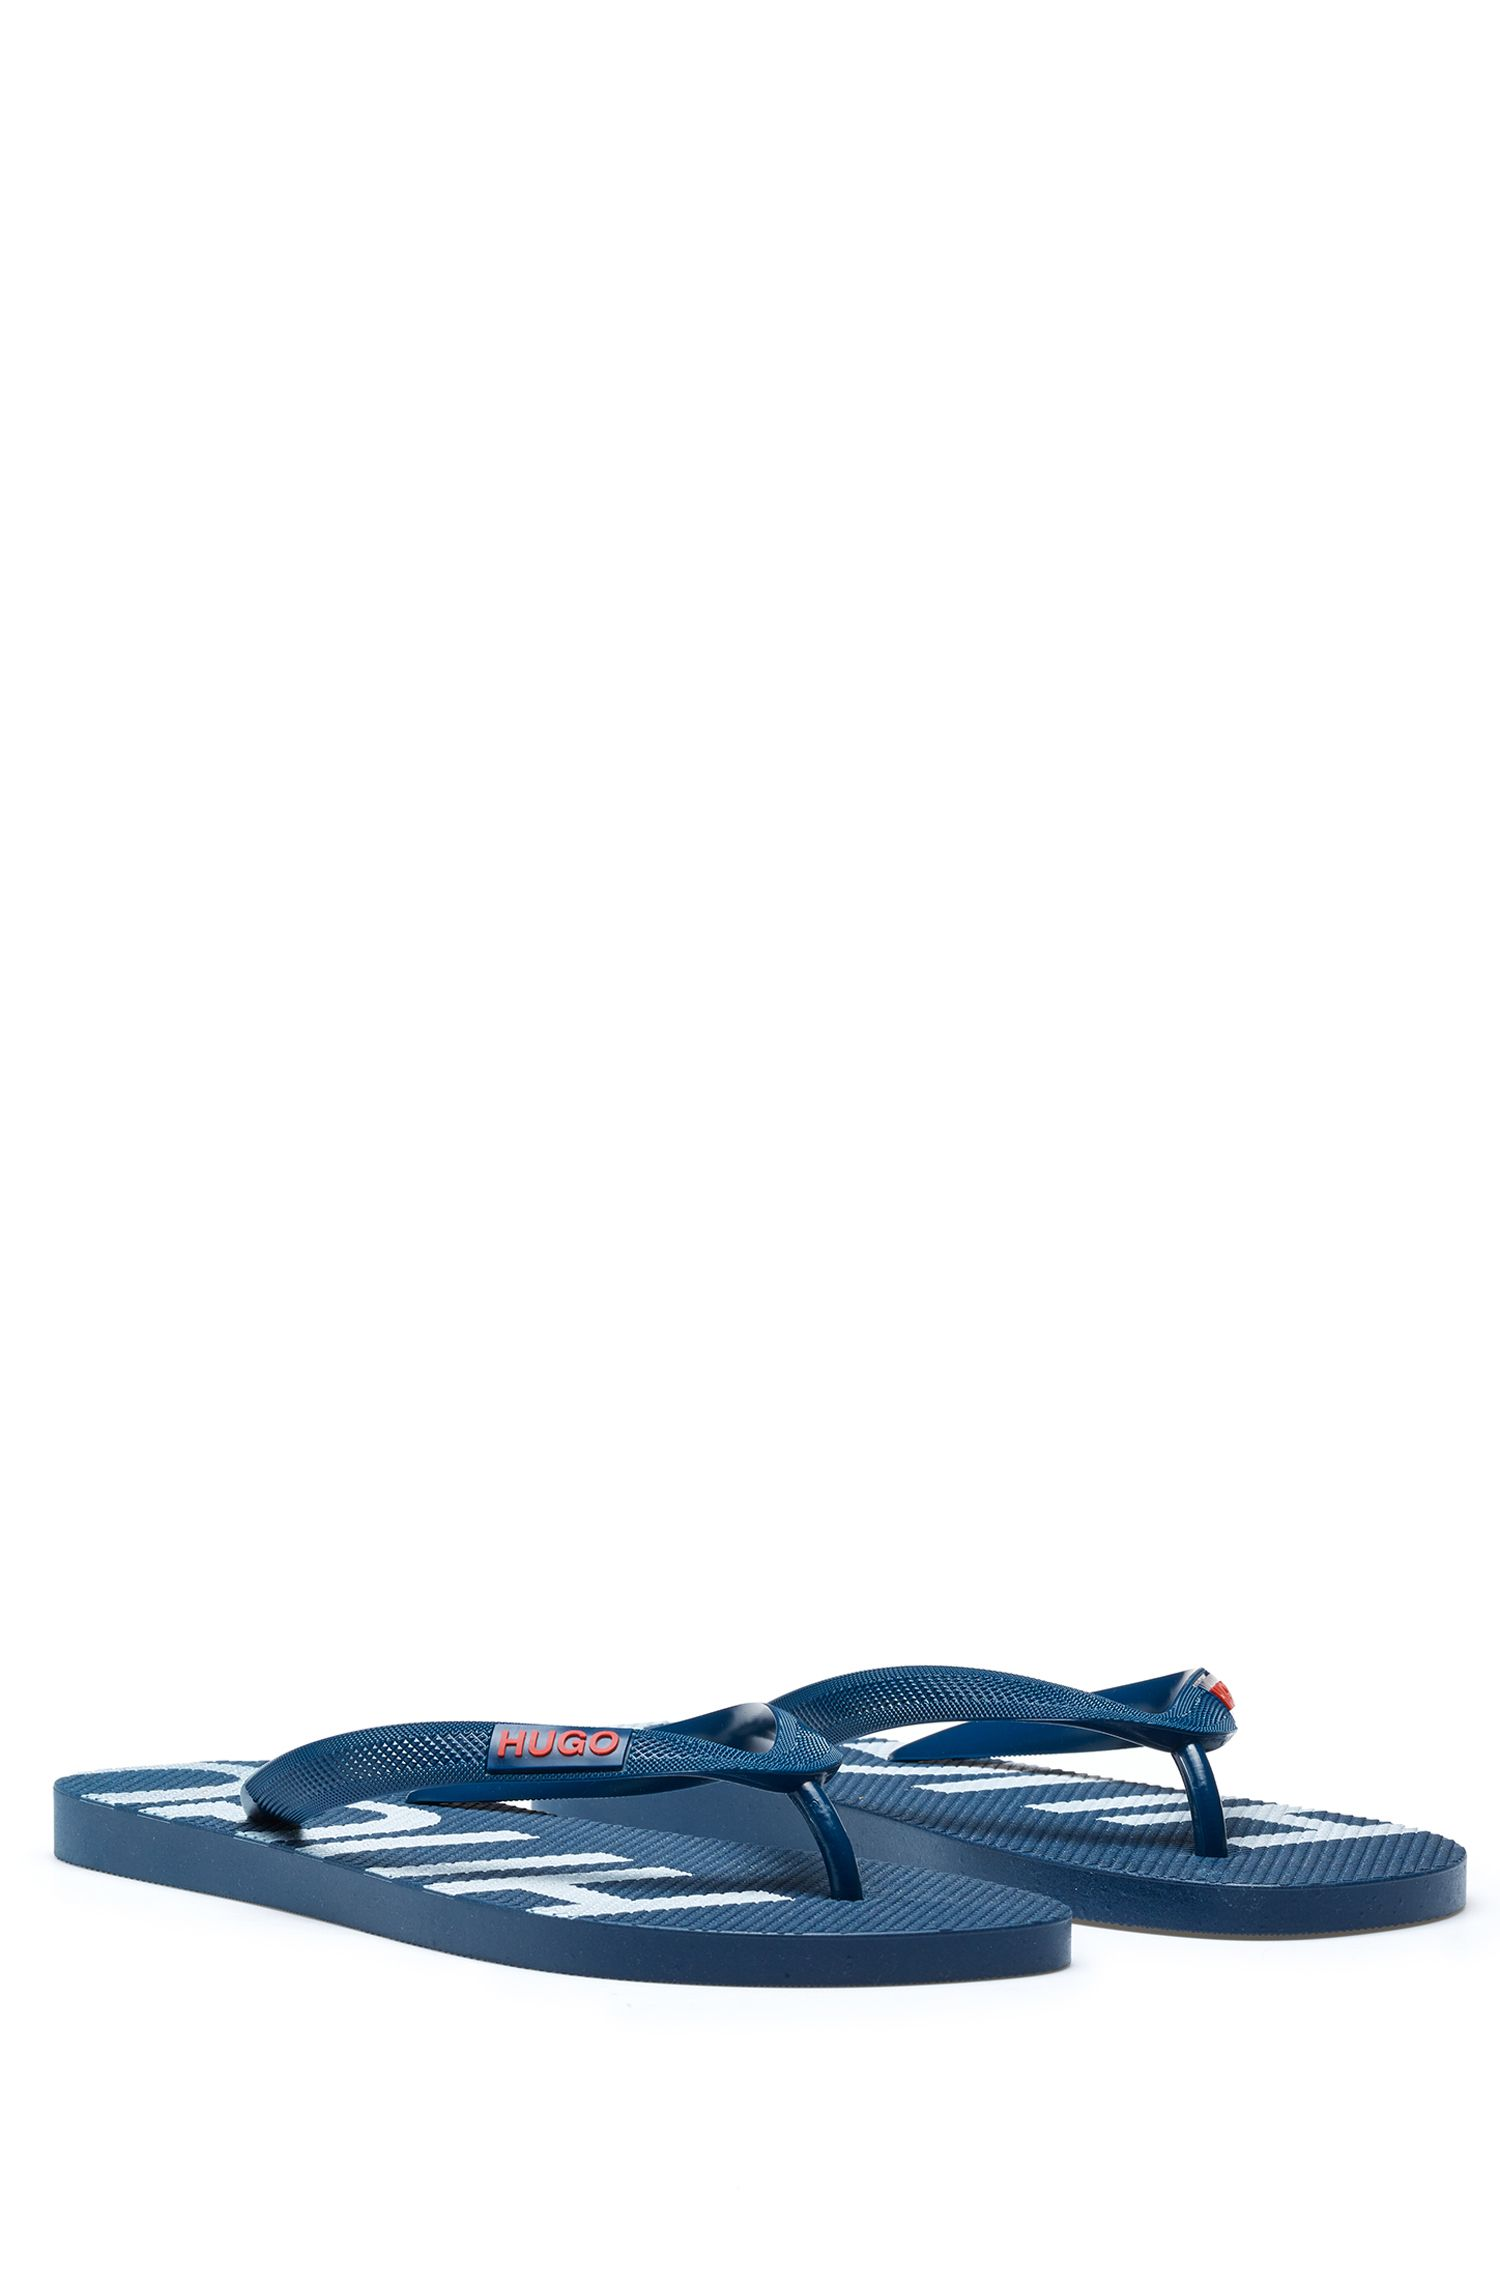 Italian-made flip-flops with logo details, Dark Blue